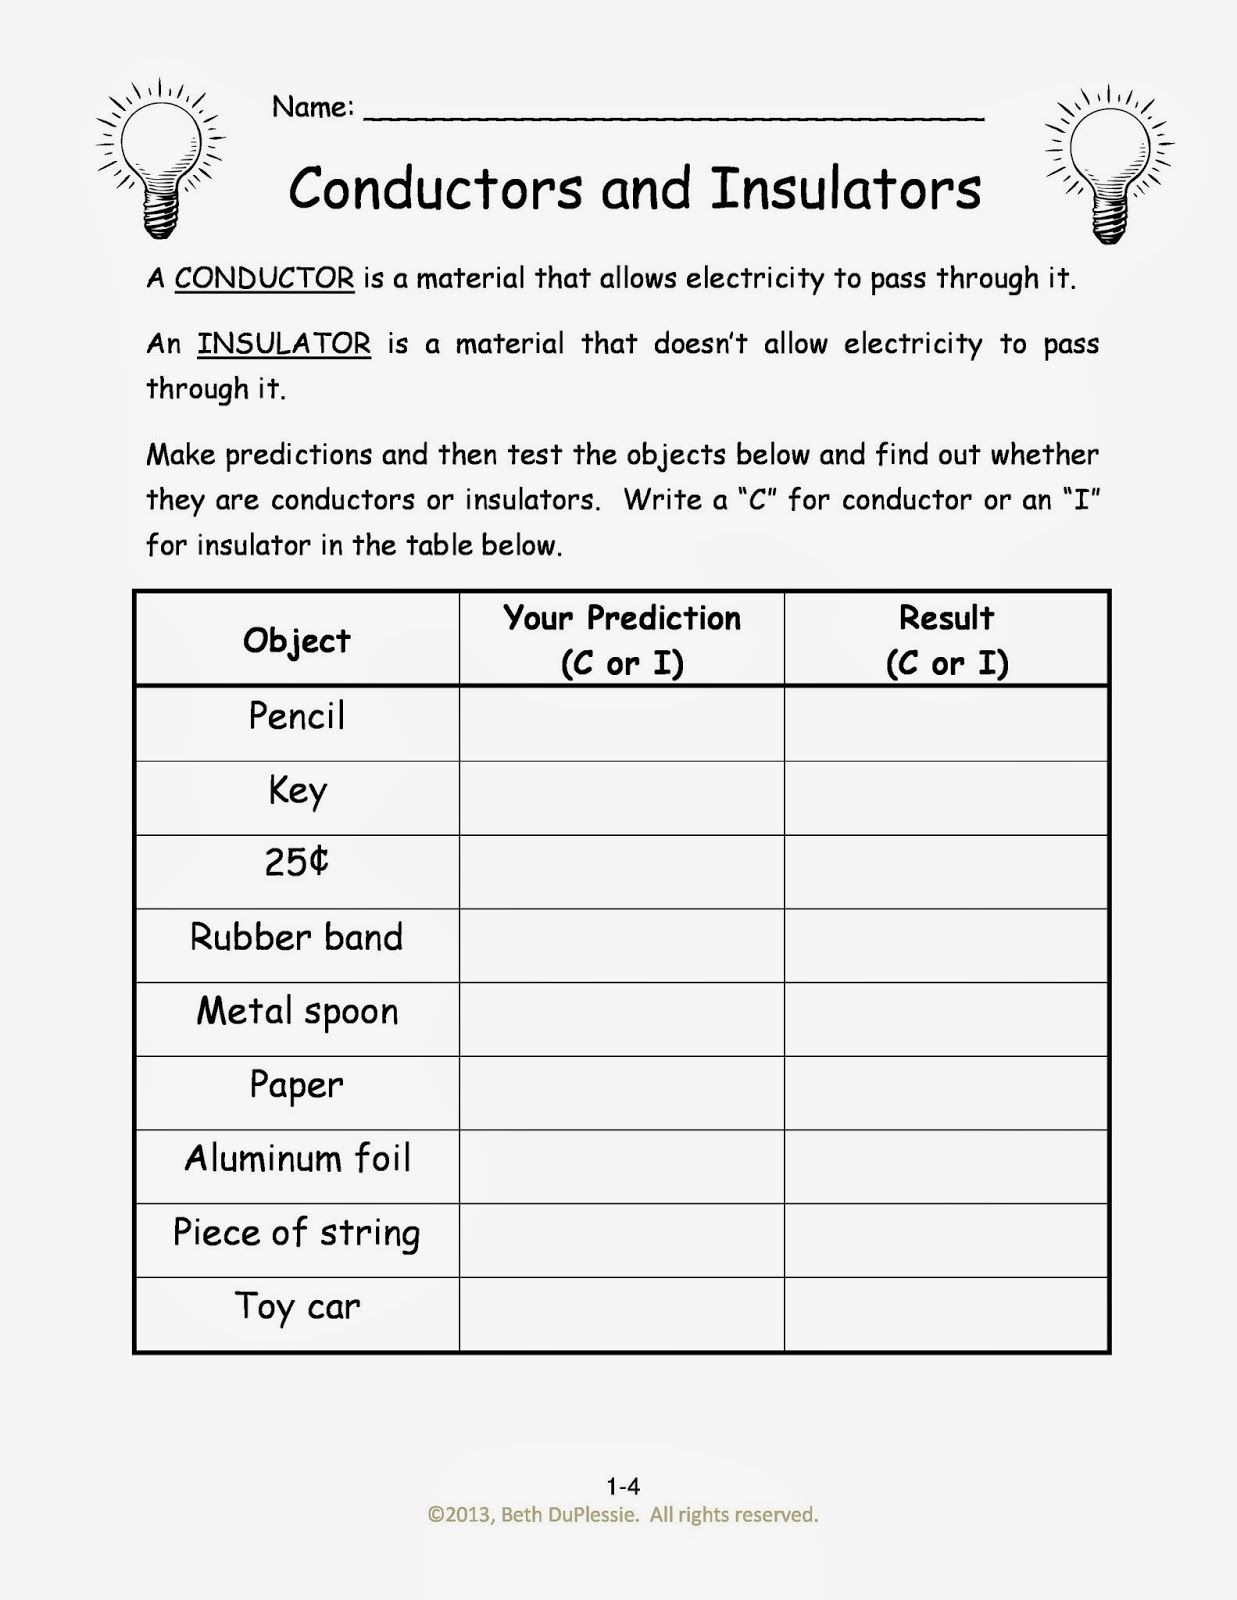 electrical conductors vs insulators essay Science -- electricity -- conductor vs insulator anchor chart  electrical conductors and insulators powerpoint by xnpsp5,  essay on radiation conduction.